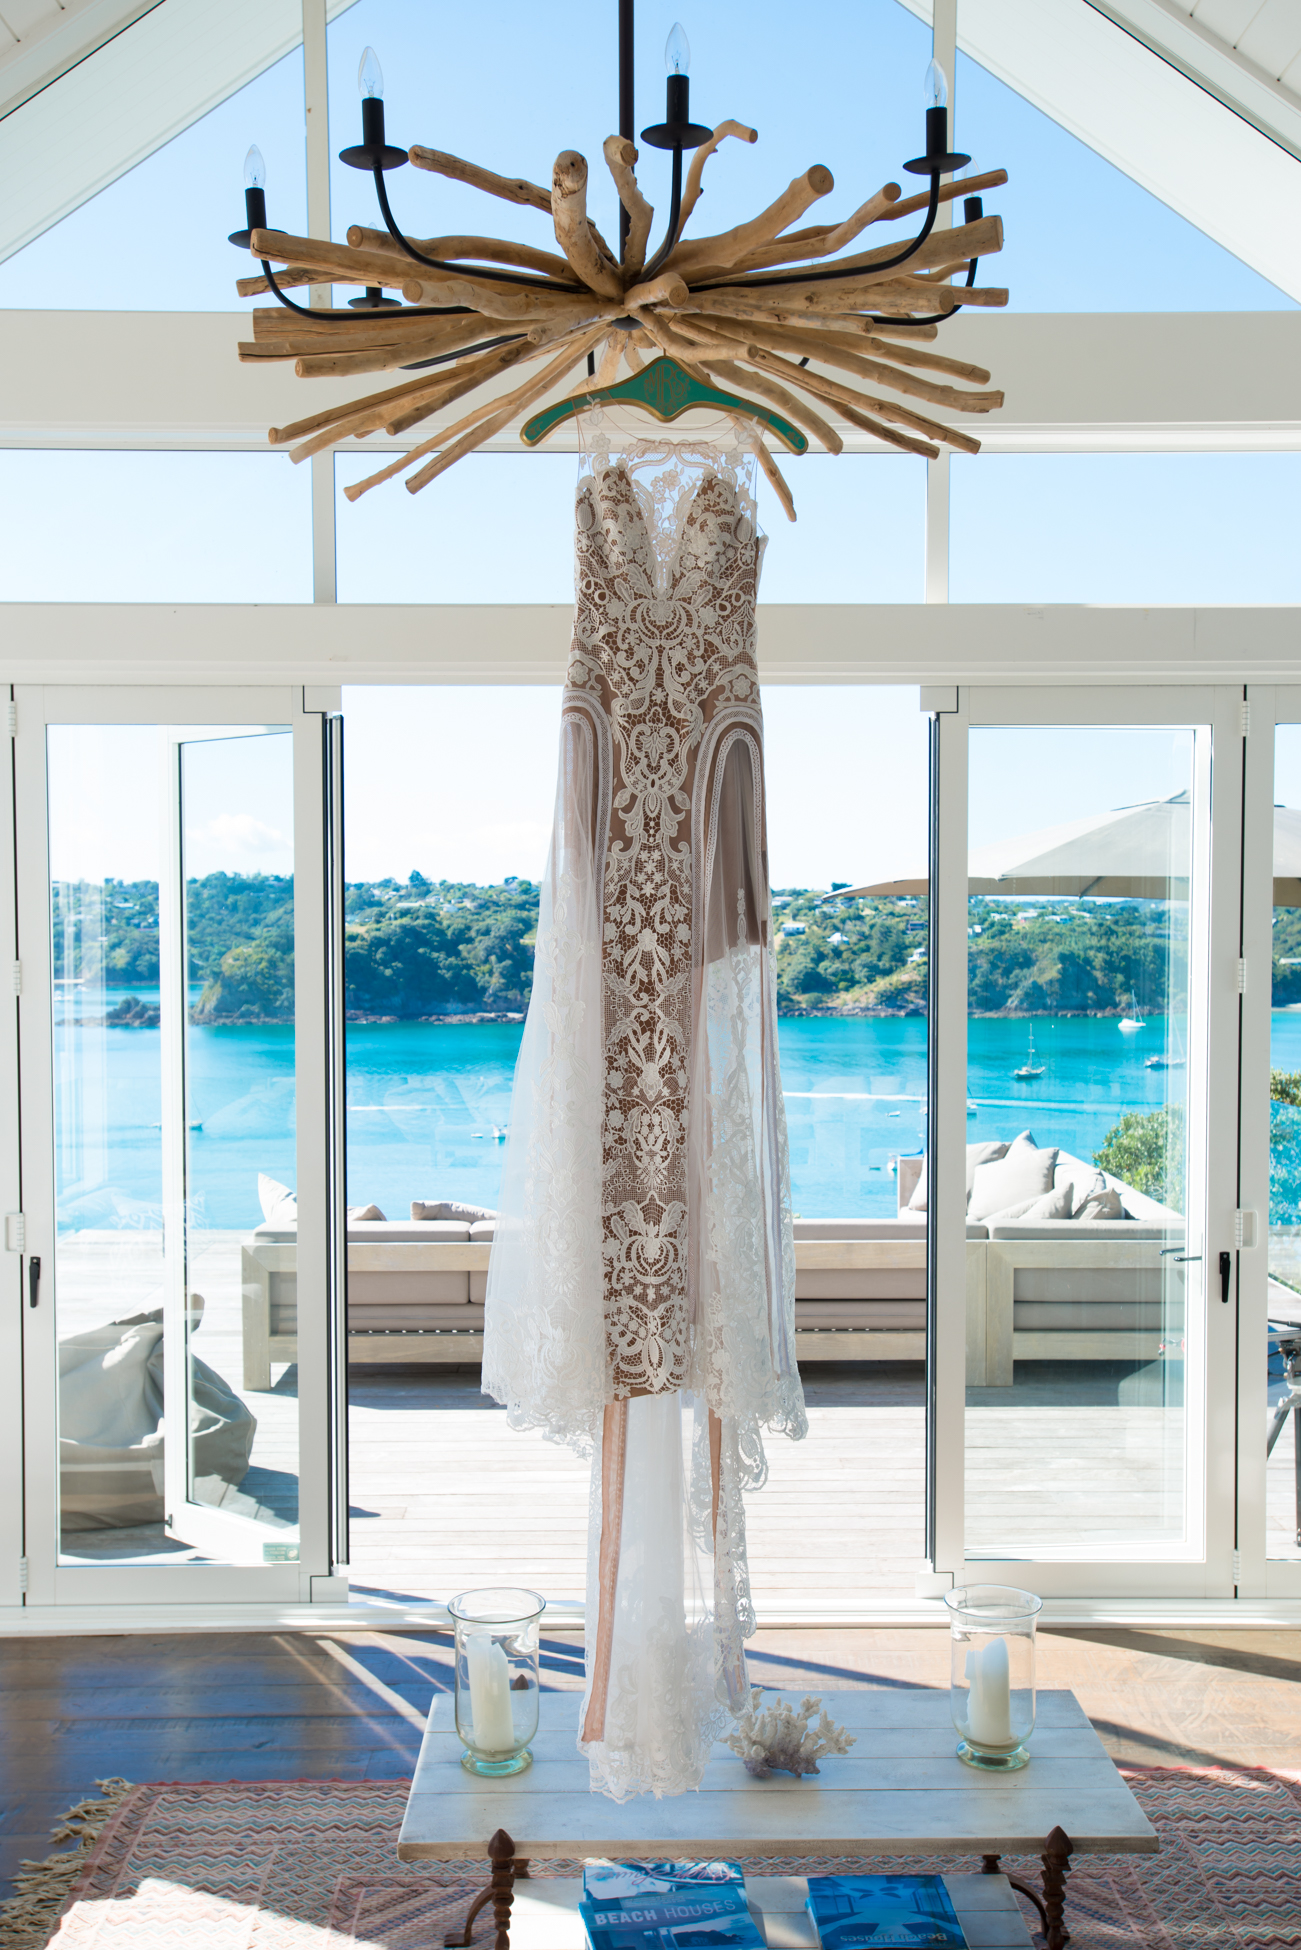 This amazing dress was designed by an Italian Couture dressmaker, who is based in Australia,Jaton Couture